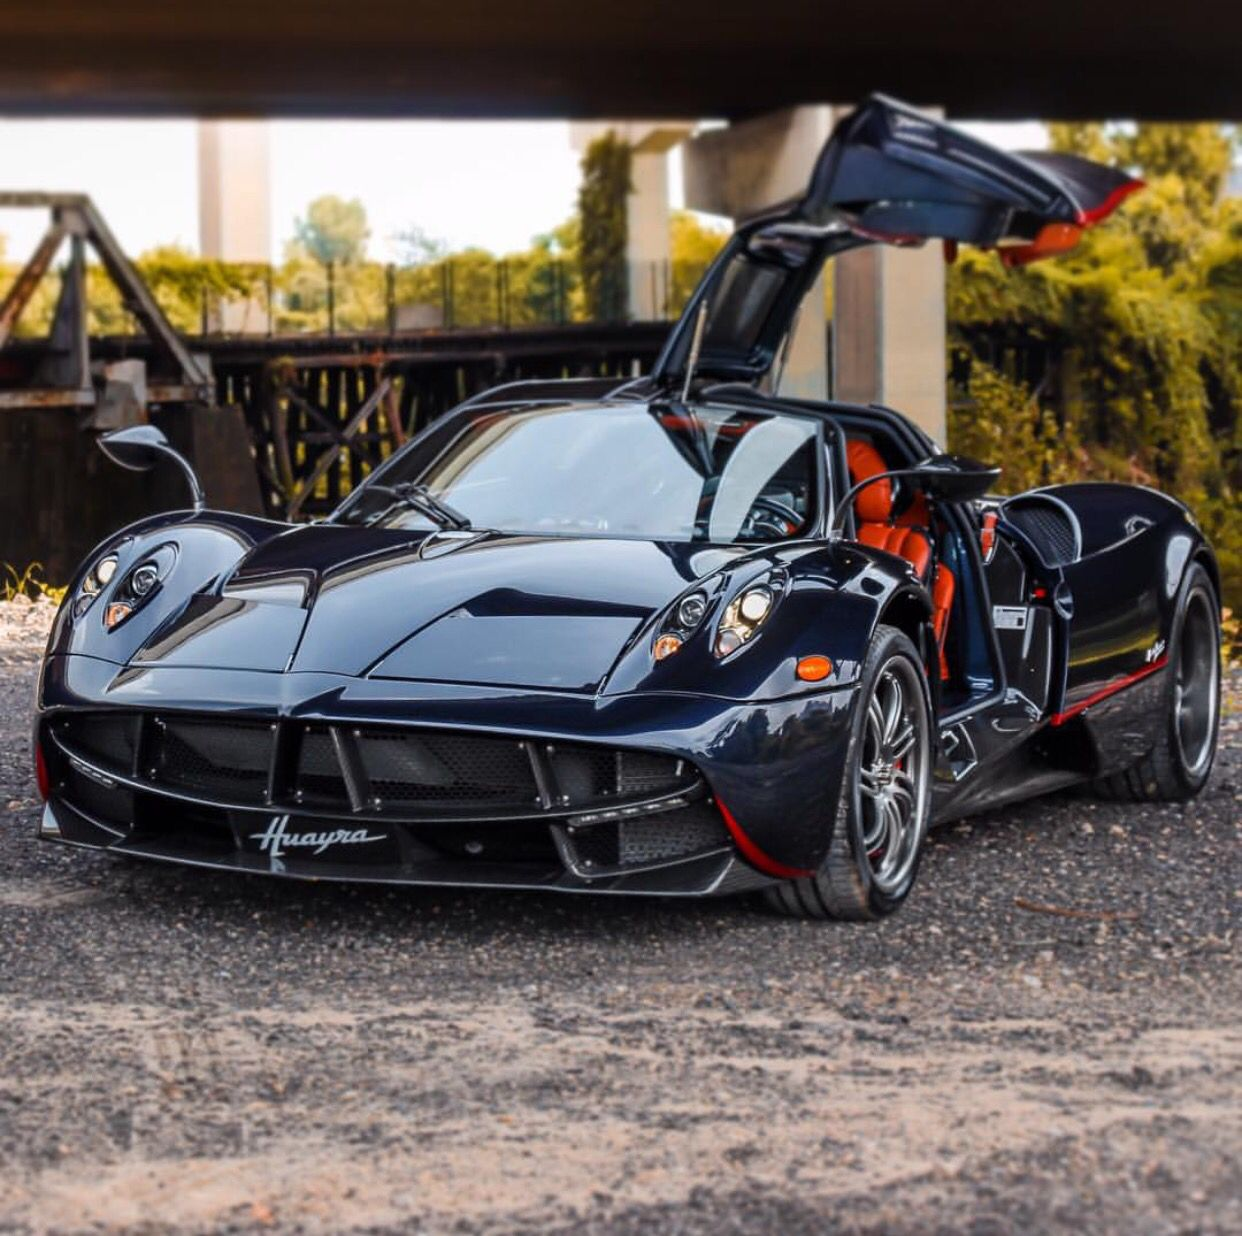 Pagani Huayra Painted In Dark Blue W Red Accents And Exposed